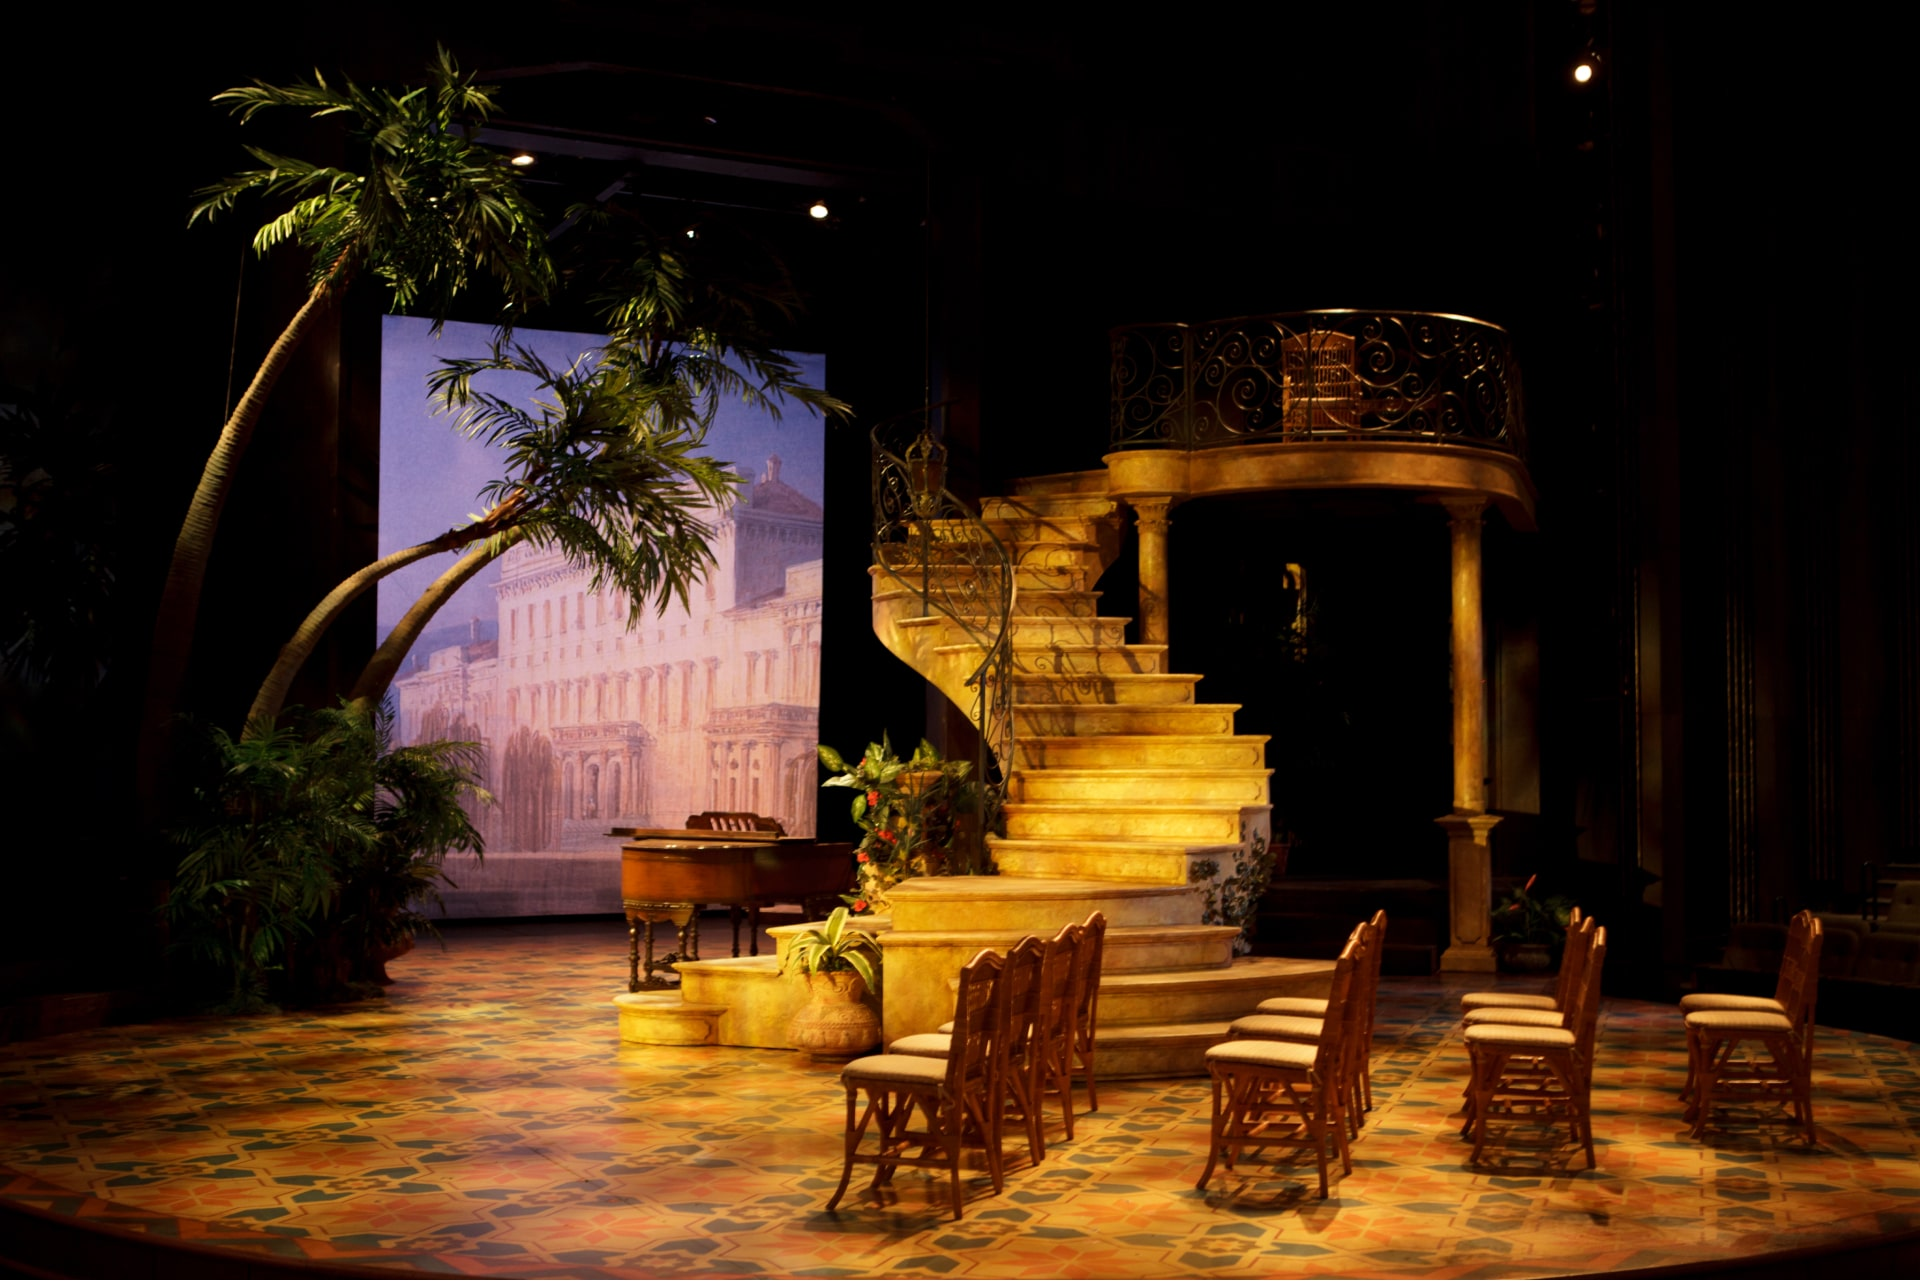 Curved staircase on tiled empty stage with chairs, piano and palm trees.